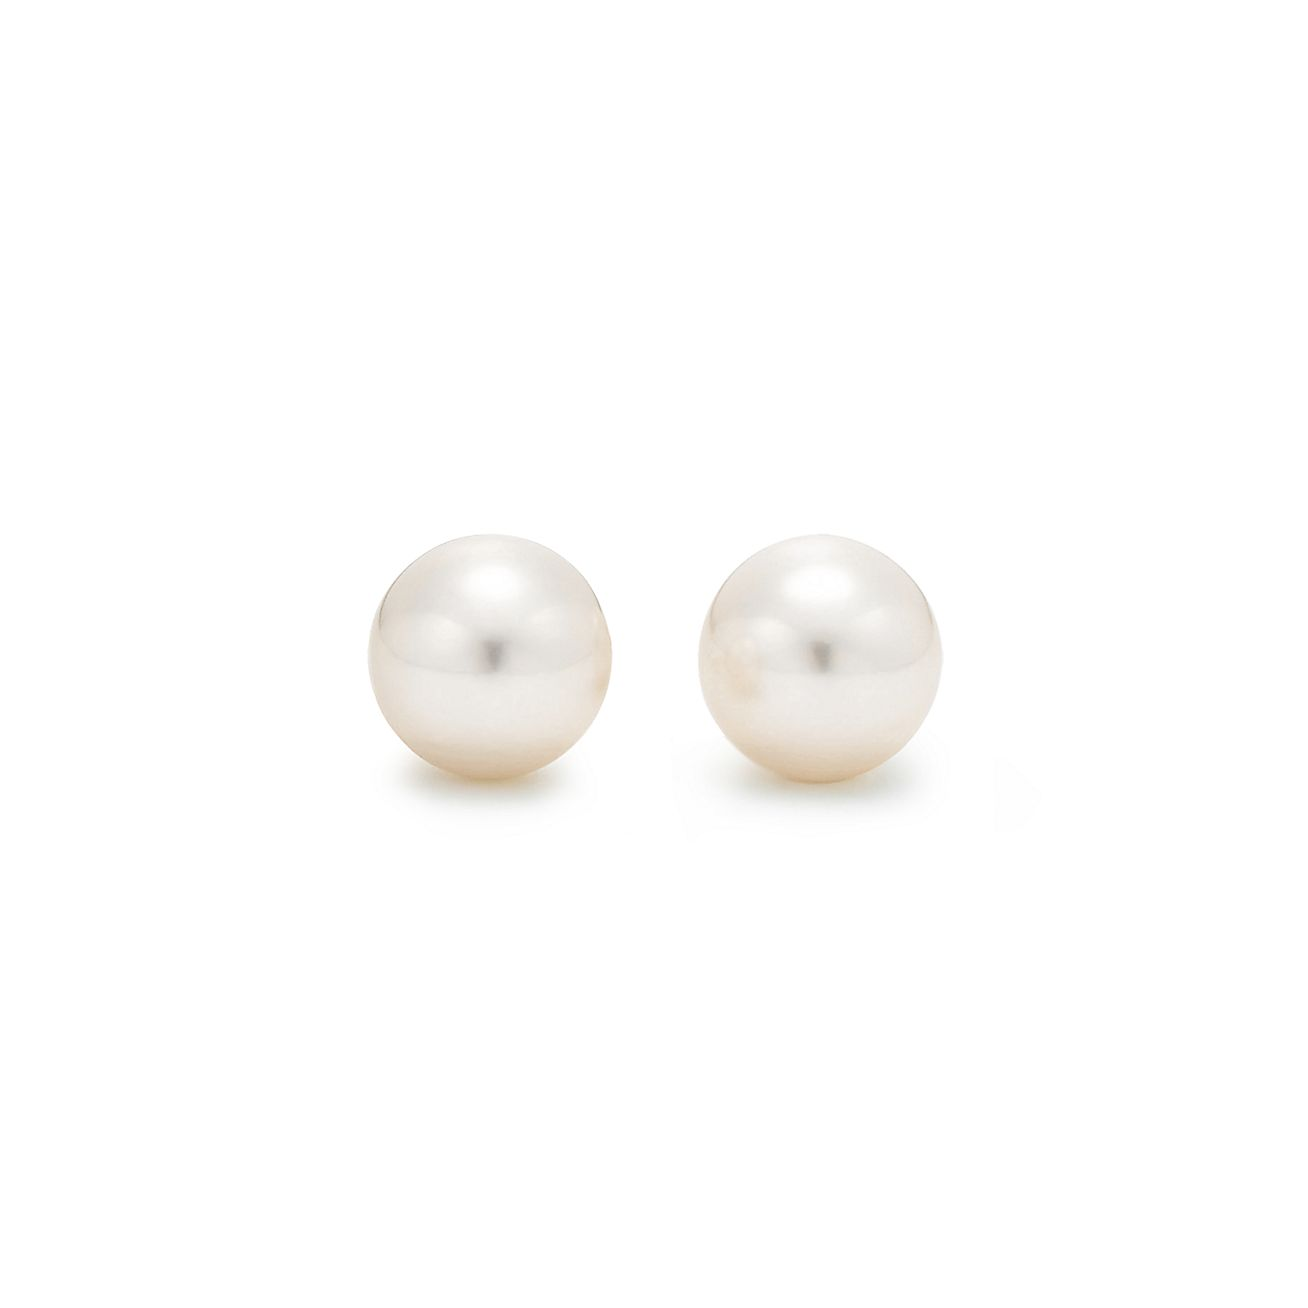 Tiffany South Sea Noble:Pearl Earrings